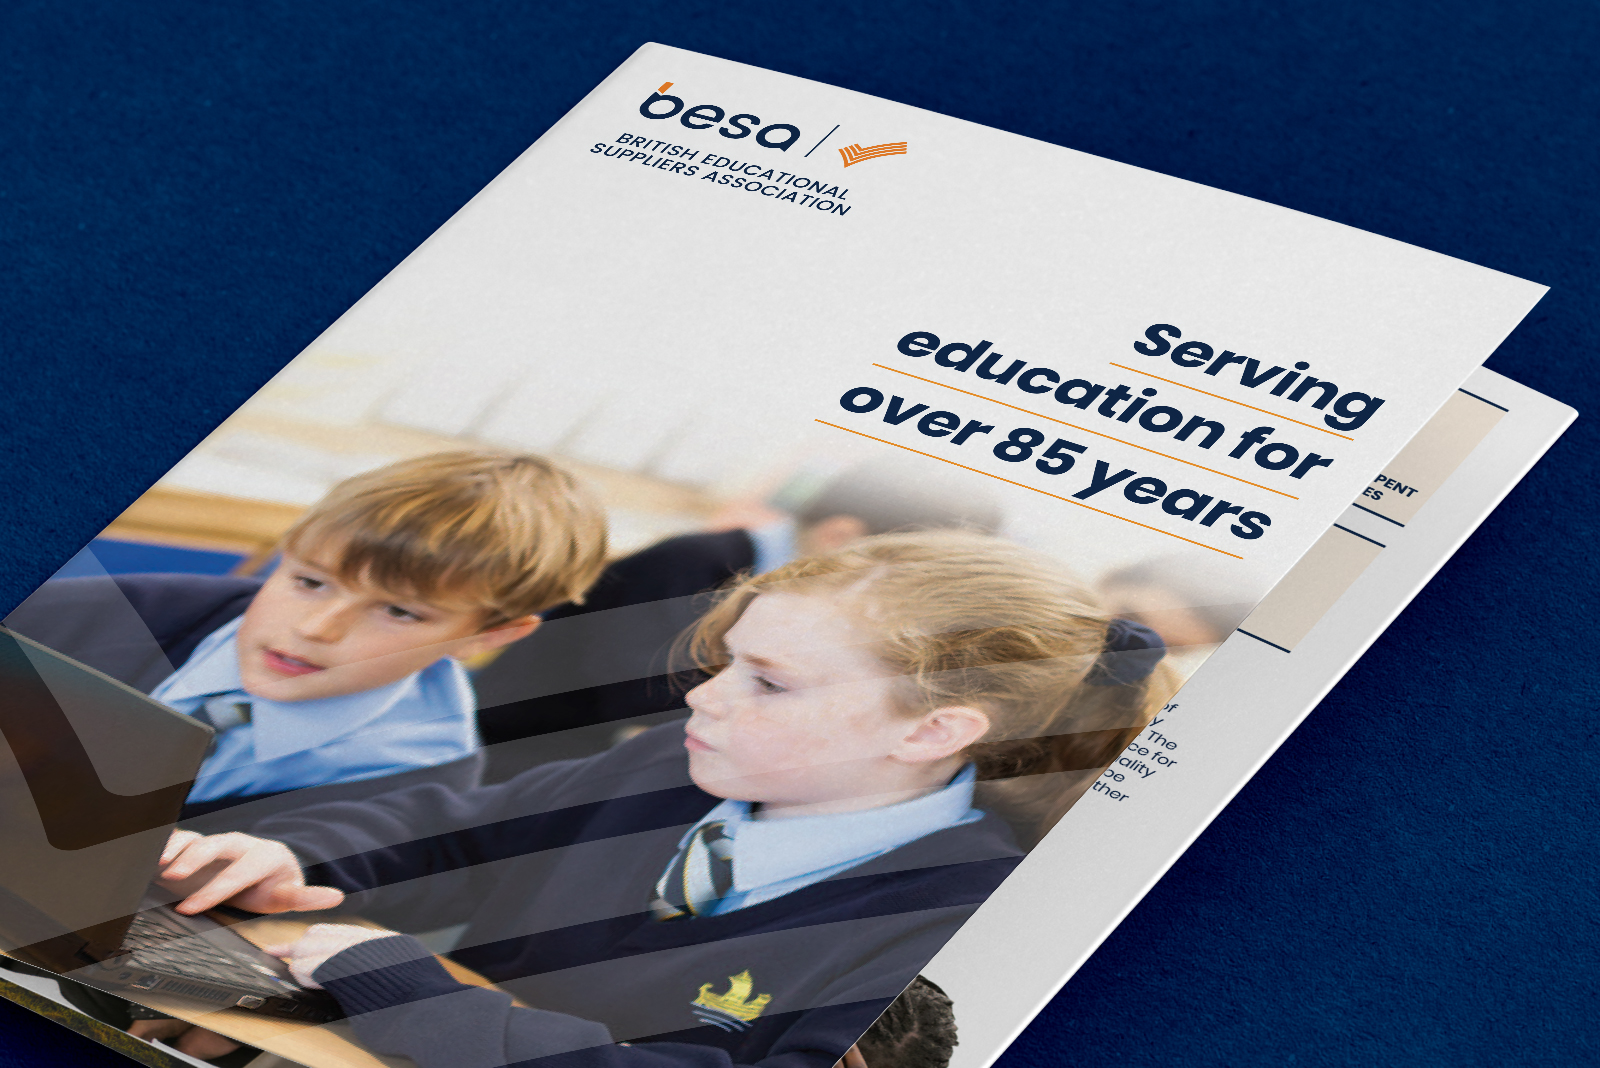 BESA – Serving education for over 85 years